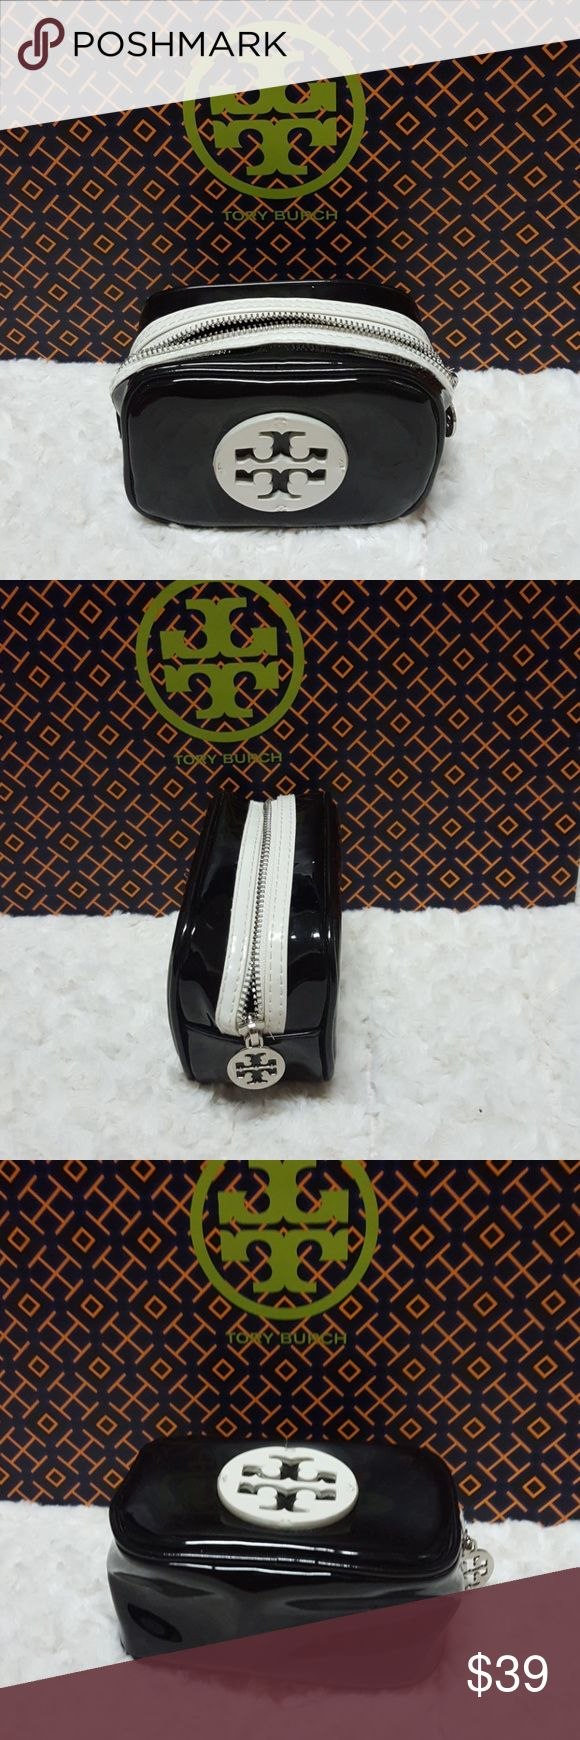 """Tory Burch Patent Small Cosmetic Bag-Authentic Tory Burch Patent Small Cosmetic Bag In good condition with minor signs of wear. 4"""" x 5.5"""" x 2.5"""". Top zip closure, fabric Lining, silver tone hardware.Authentic. Tory Burch Bags Cosmetic Bags & Cases"""